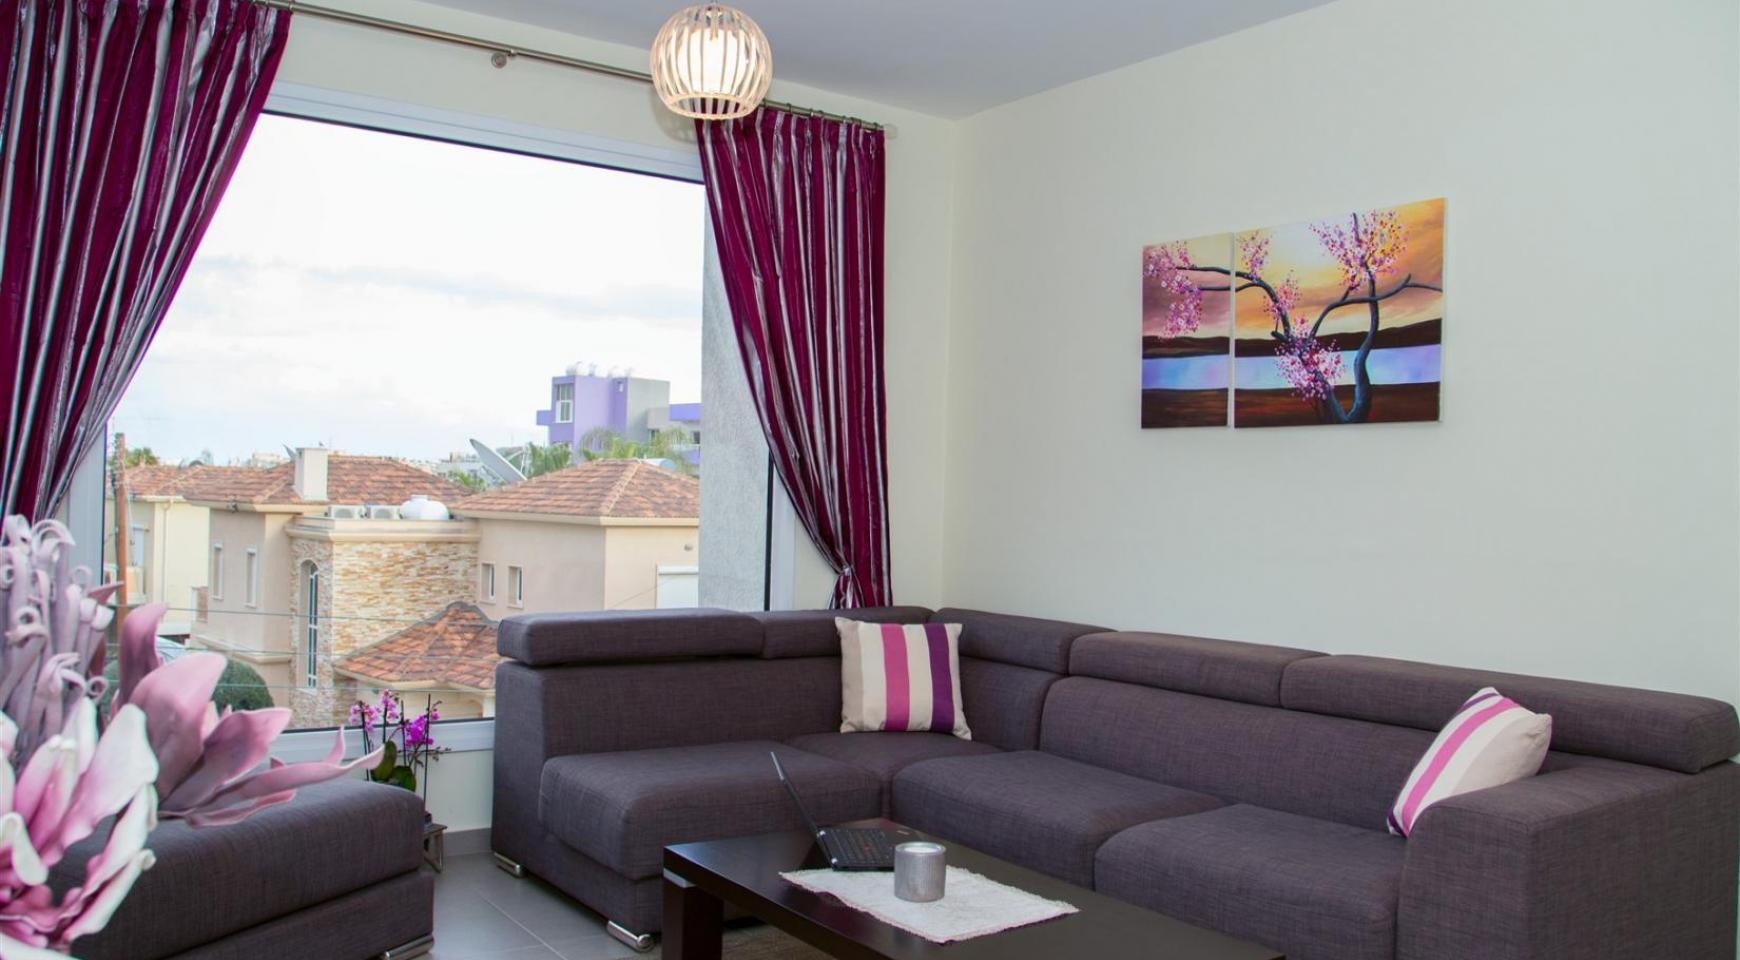 Luxury 2 Bedroom Apartment Christina 301 in the Tourist Area - 2